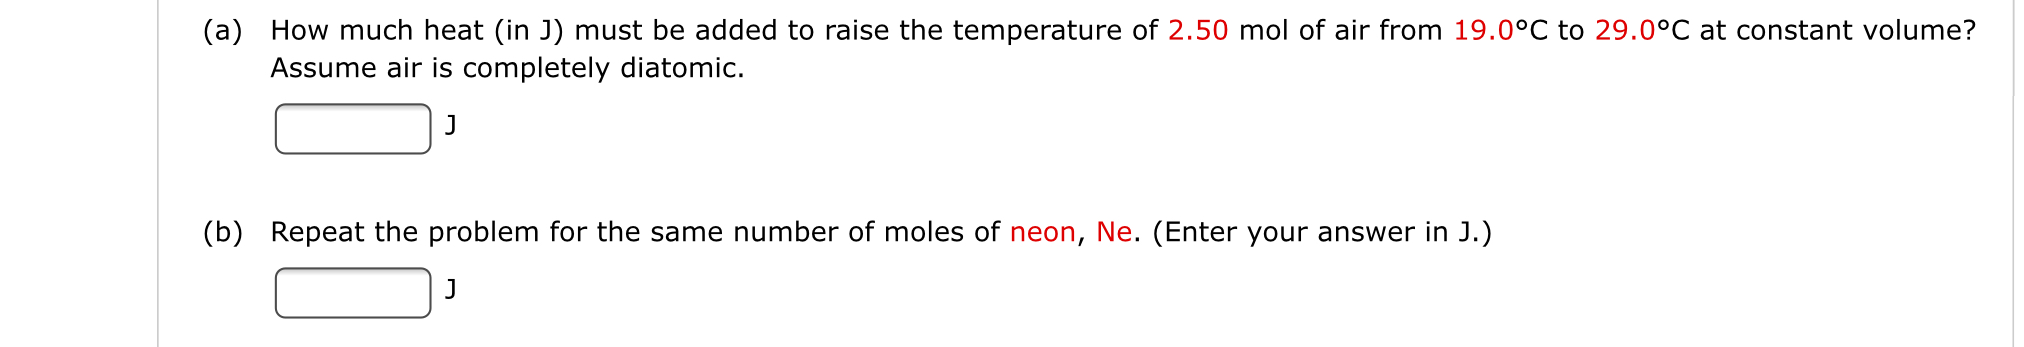 (a) How much heat (in J) must be added to raise the temperature of 2.50 mol of air from 19.0°C to 29.0°C at constant volume? Assume air iss completely diatomic. J (b) Repeat the problem for the same number of moles of neon, Ne. (Enter your answer in J.) J